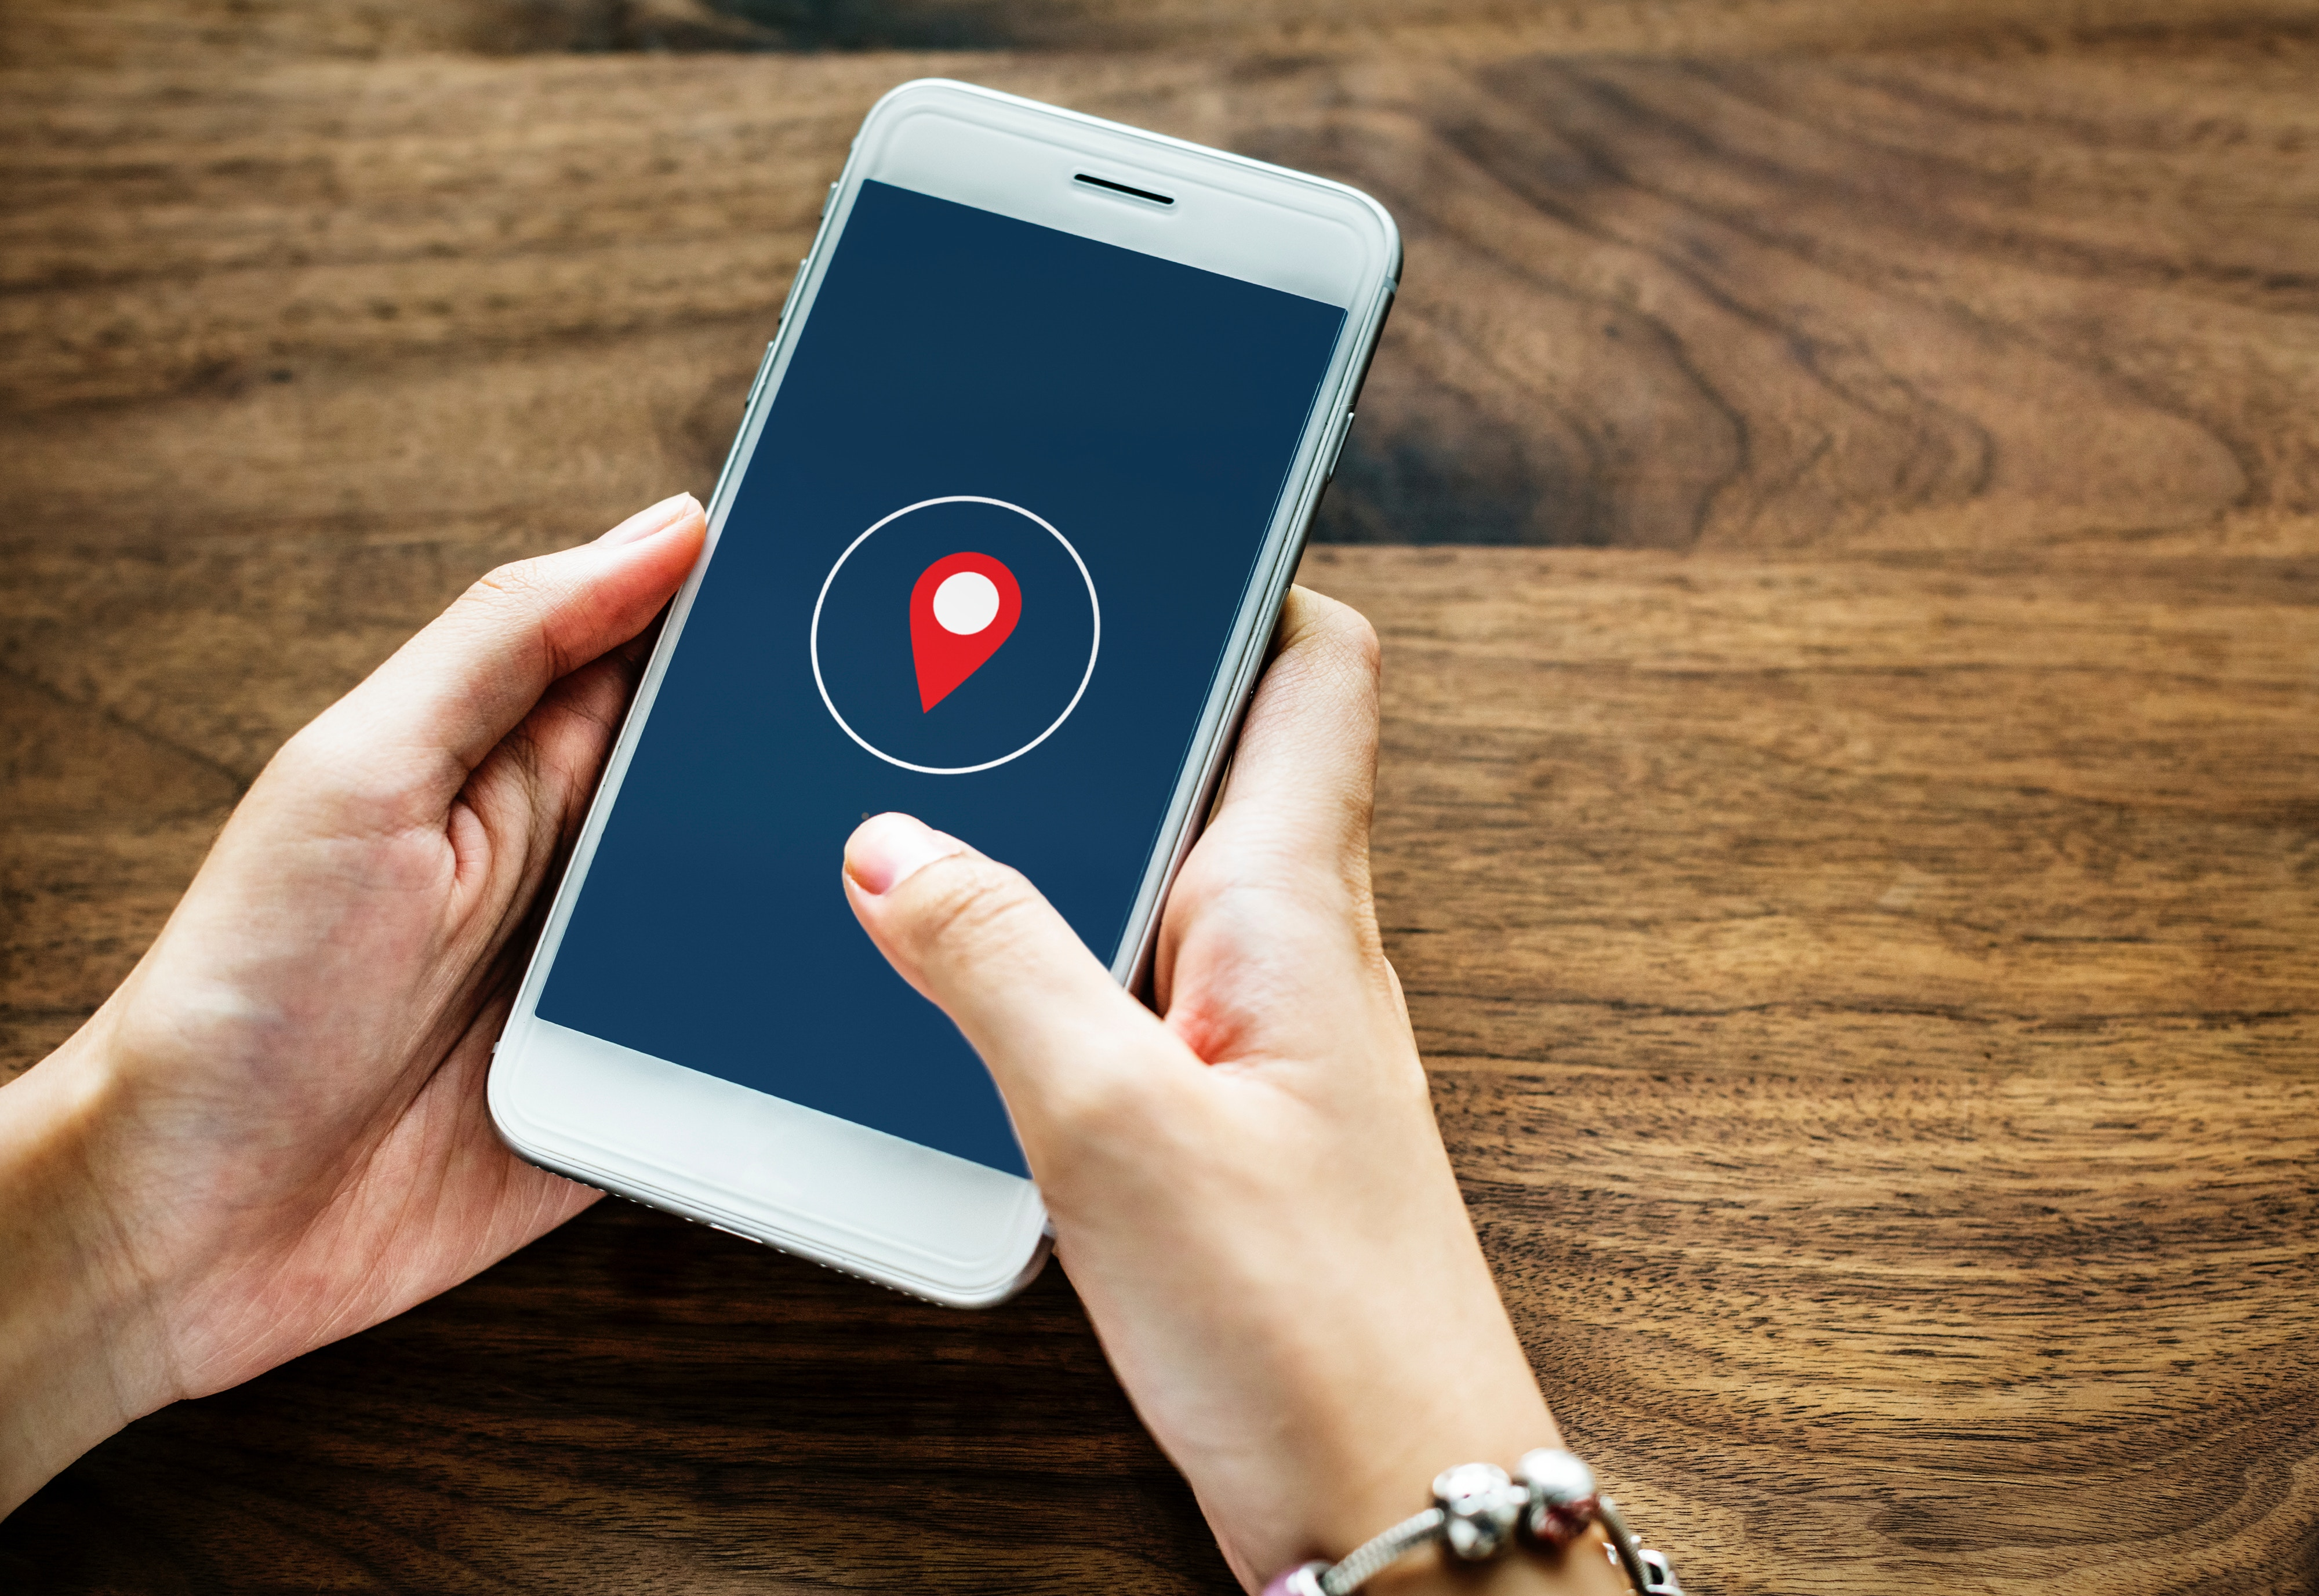 Location services lead to high customer satisfaction